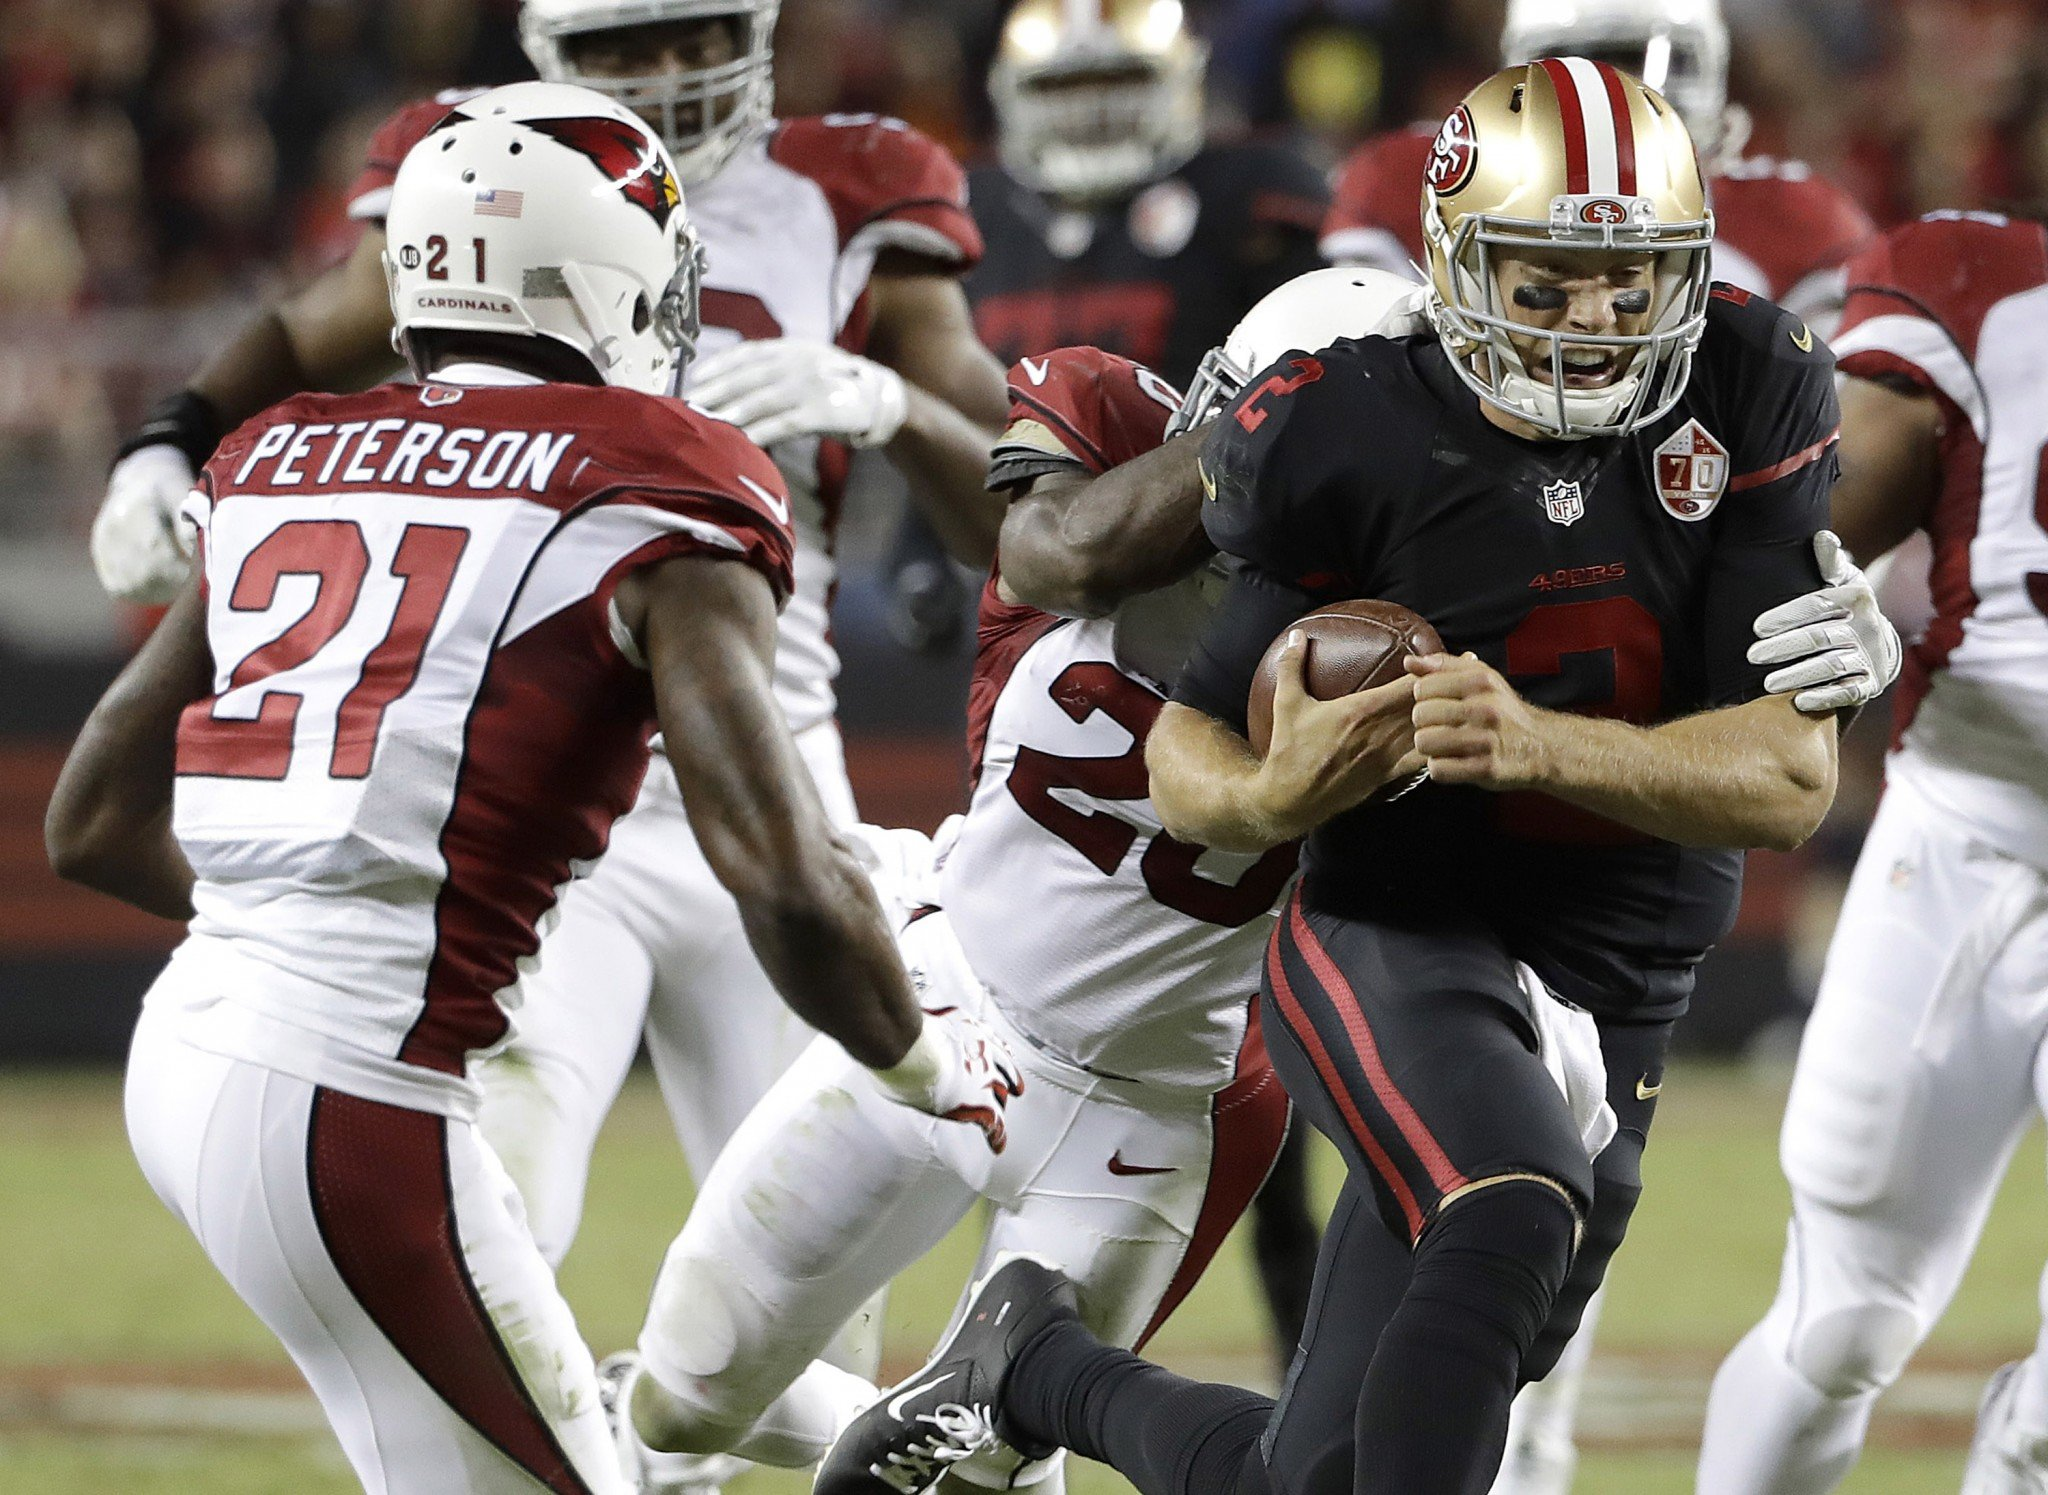 Cardinals look to build off 33-21 win over 49ers